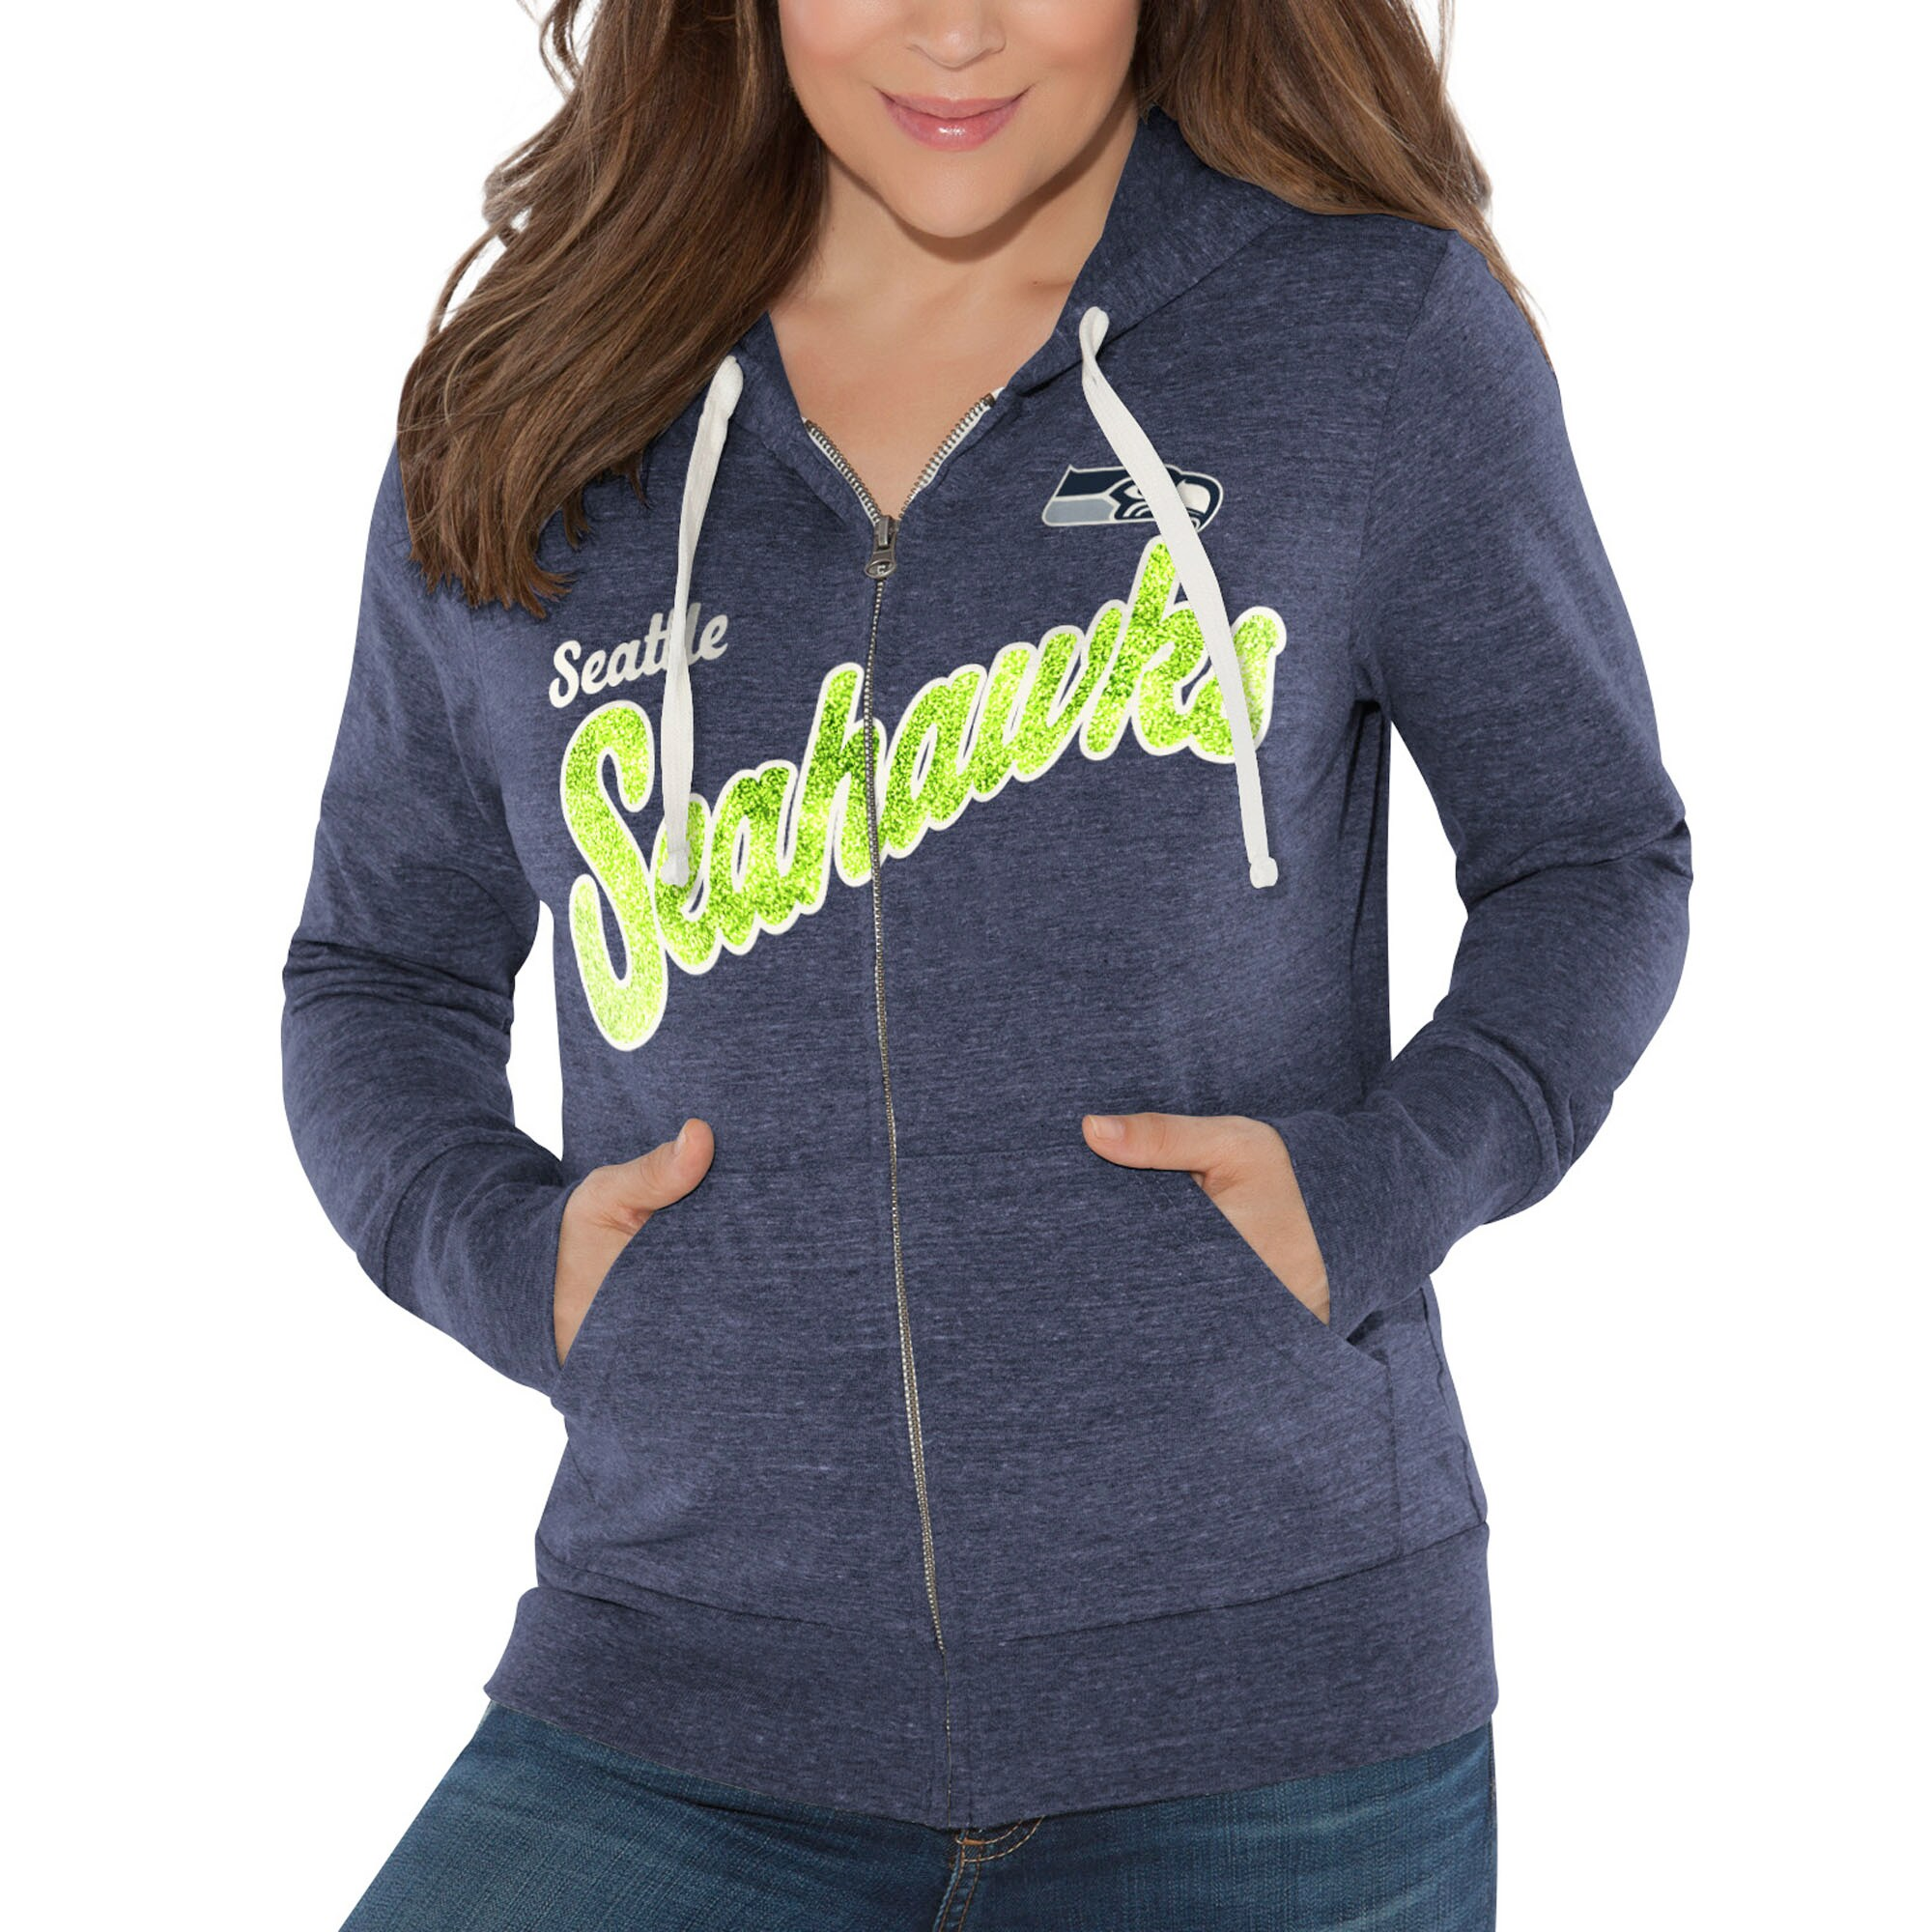 Seattle Seahawks Touch by Alyssa Milano Women's All American Full-Zip Hoodie - College Navy